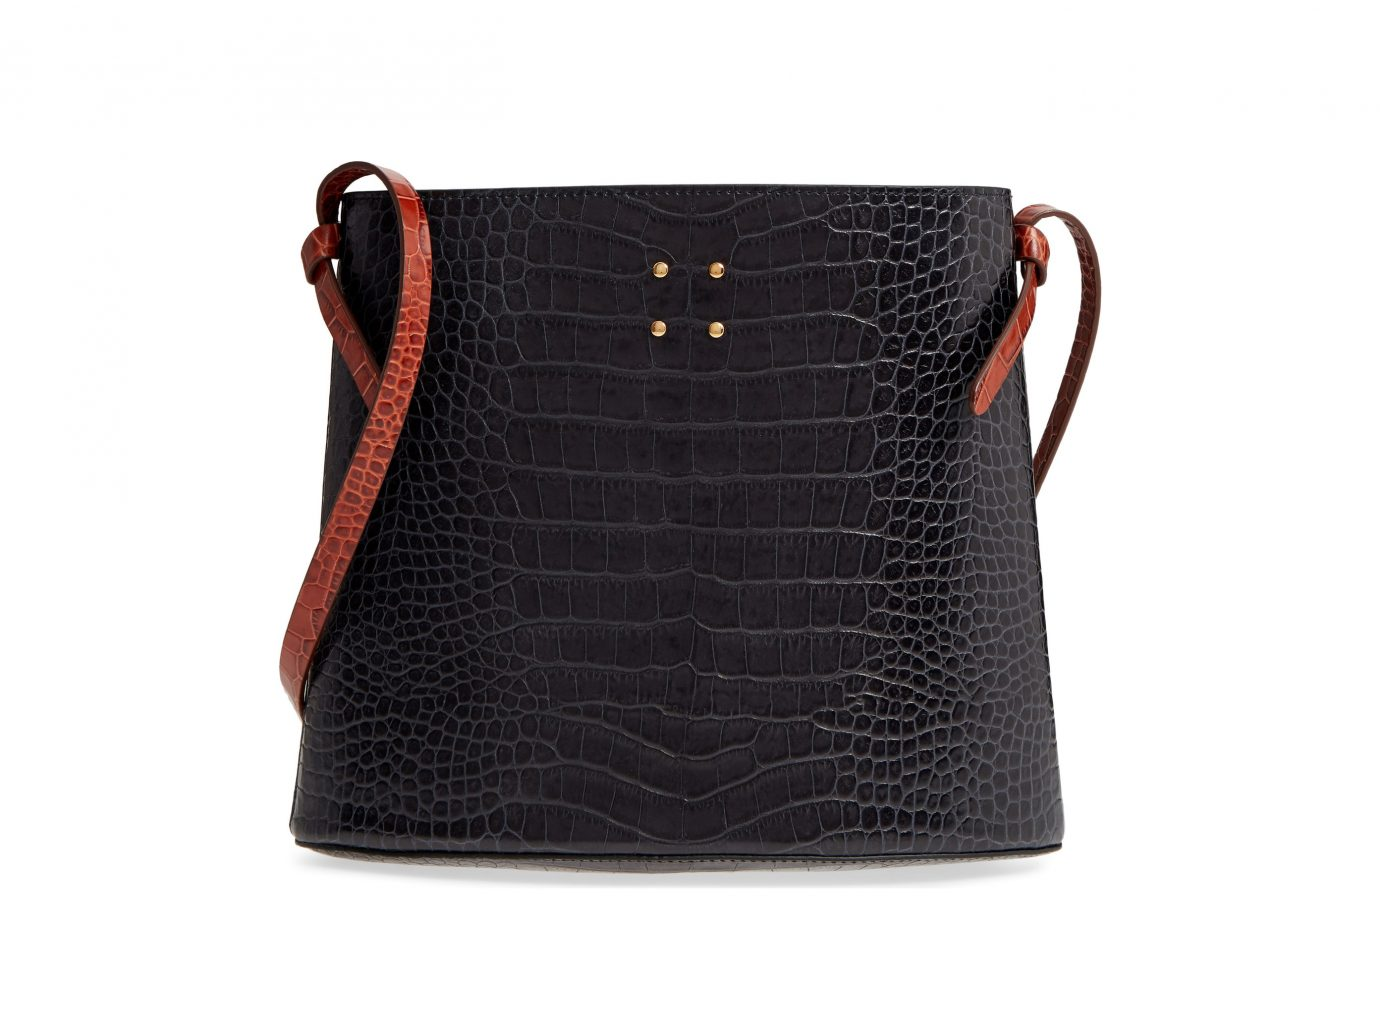 Sybil Croc Embossed Leather Tote, Main, color, Chocolate Brown Sybil Croc Embossed Leather Tote